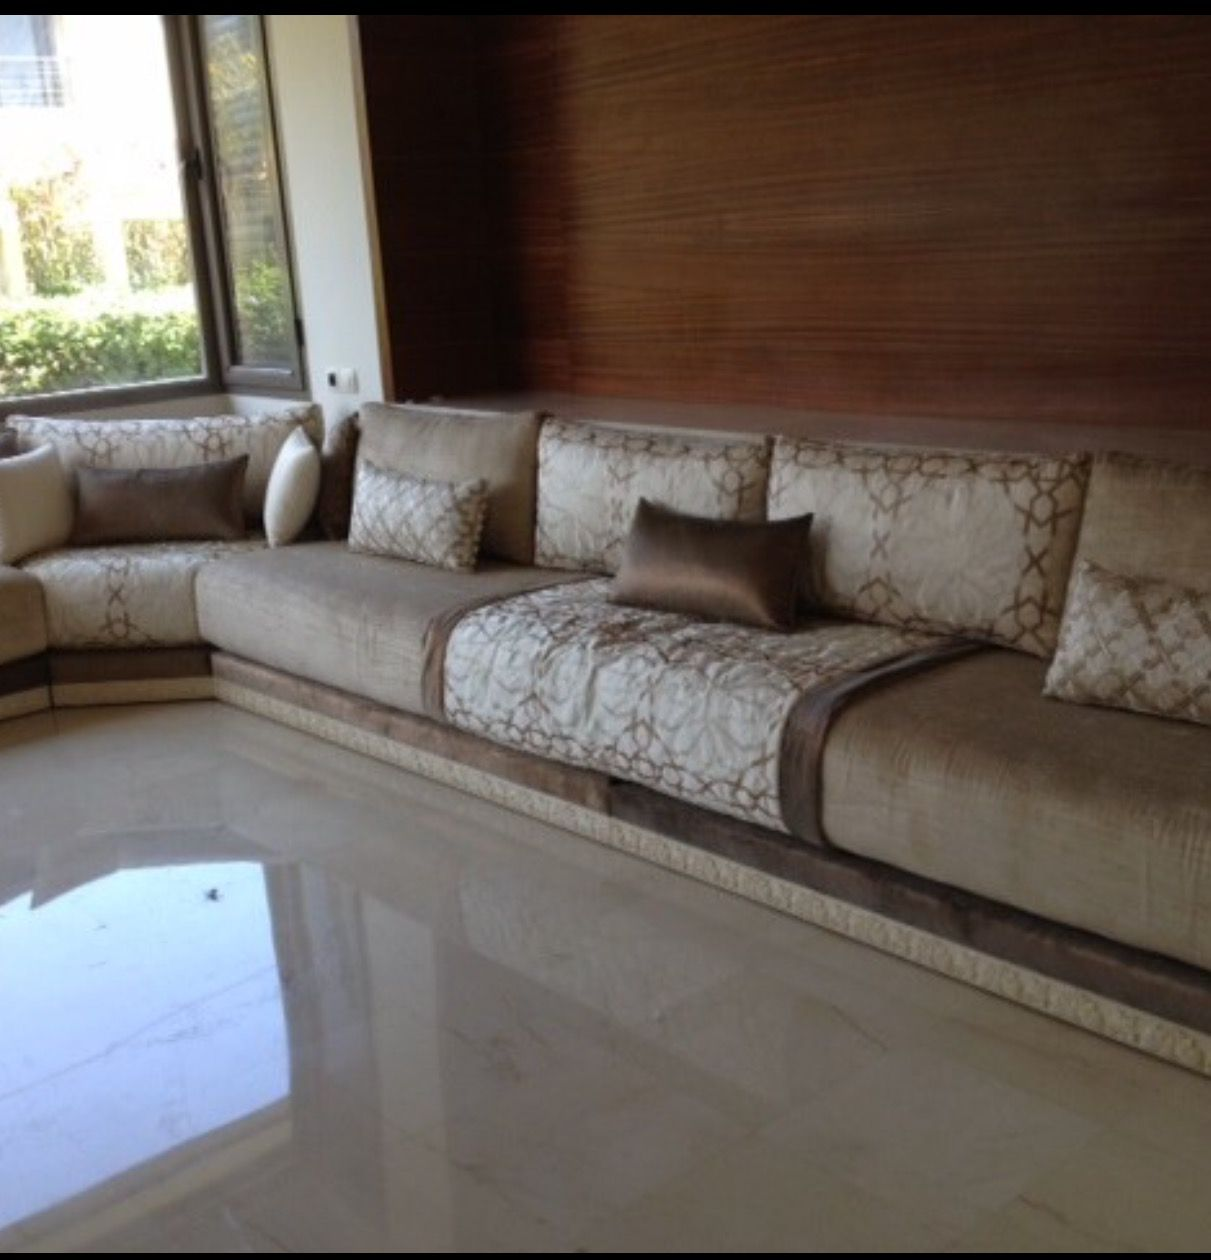 Seddari, The Moroccan Sofa